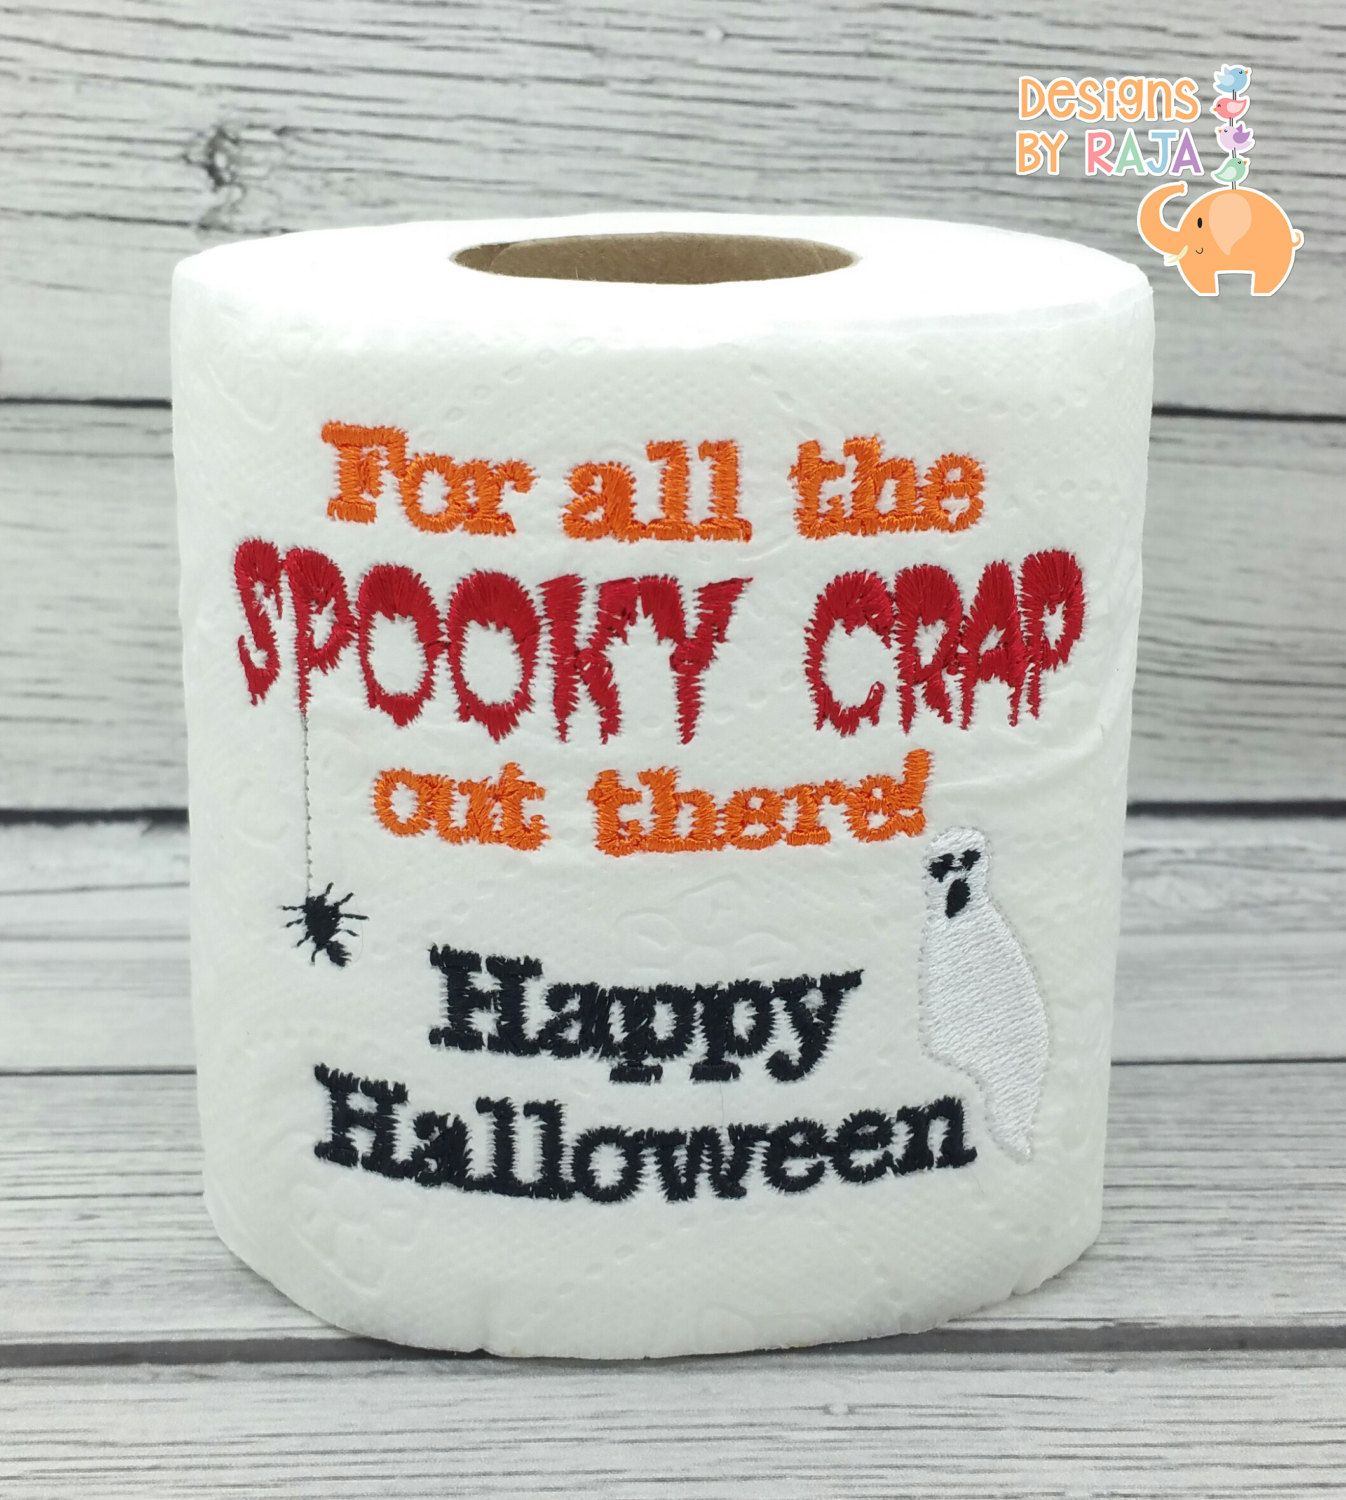 Embroidery designs for toilet paper - Happy Halloween Embroidered Toilet Paper Halloween Decorations Spooky Decor Funny Gag Gift